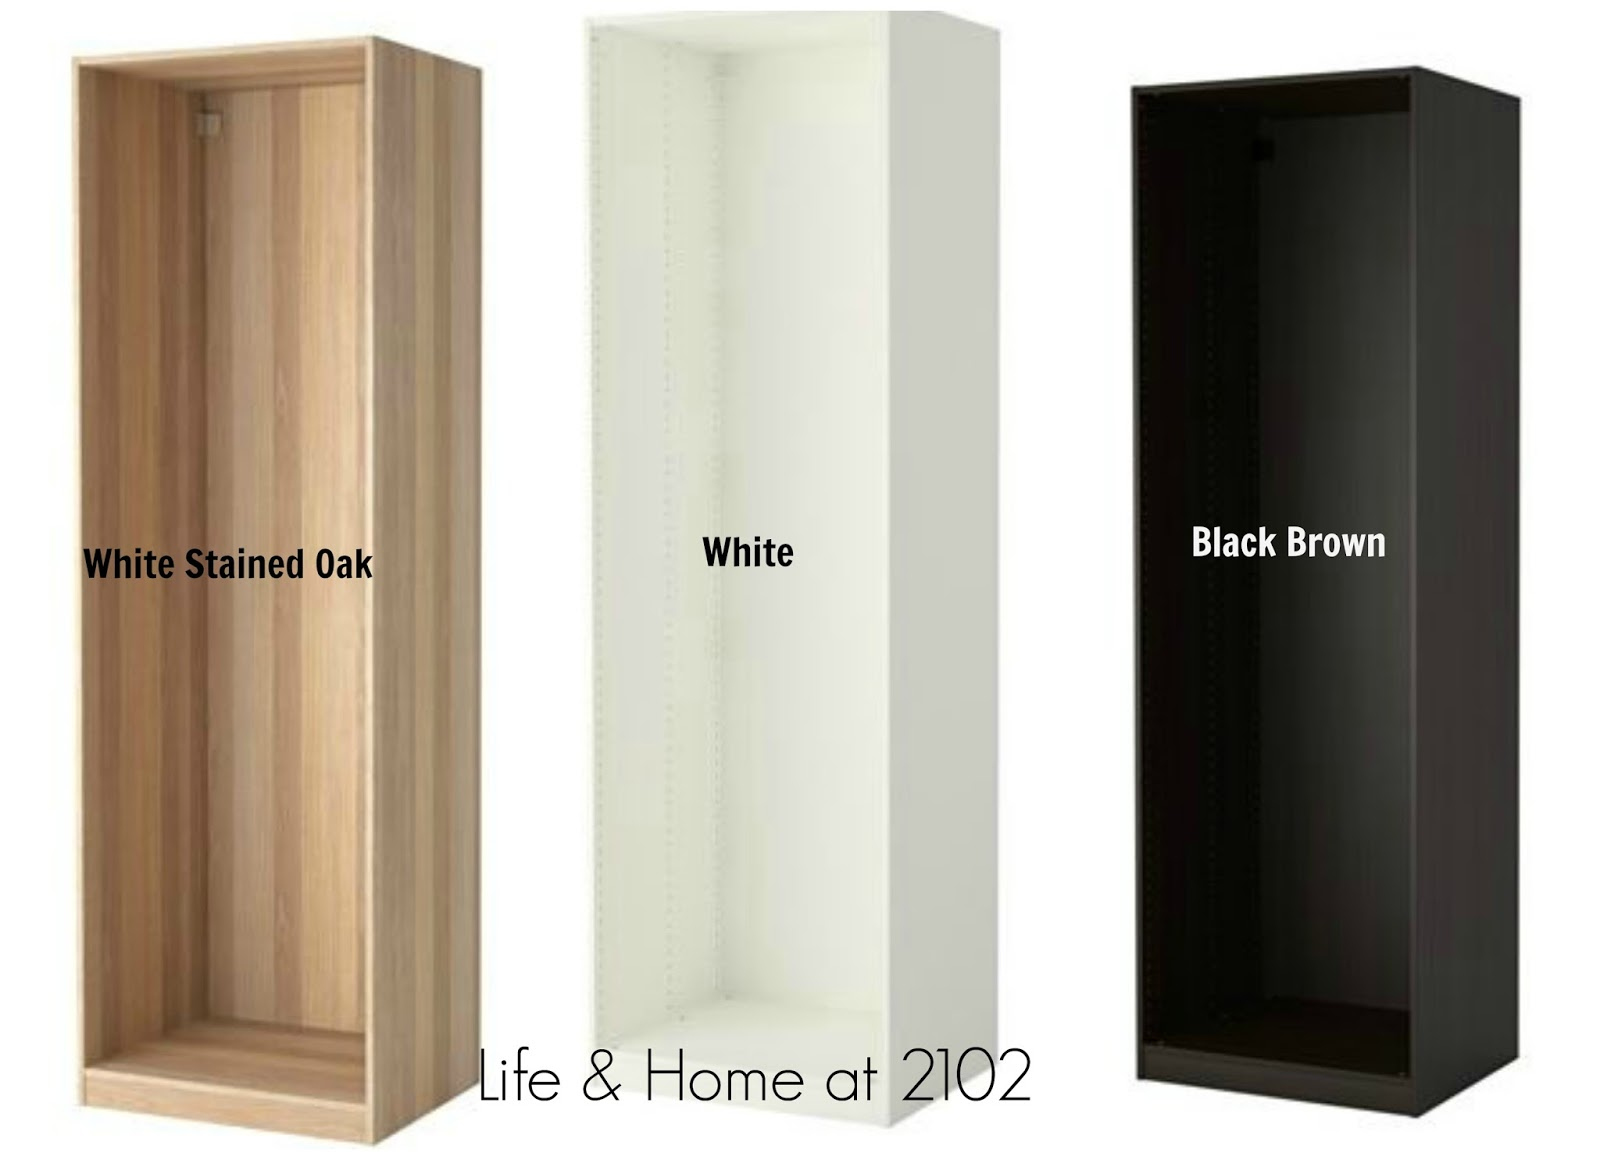 These Are The 3 Available Finishes From IKEA